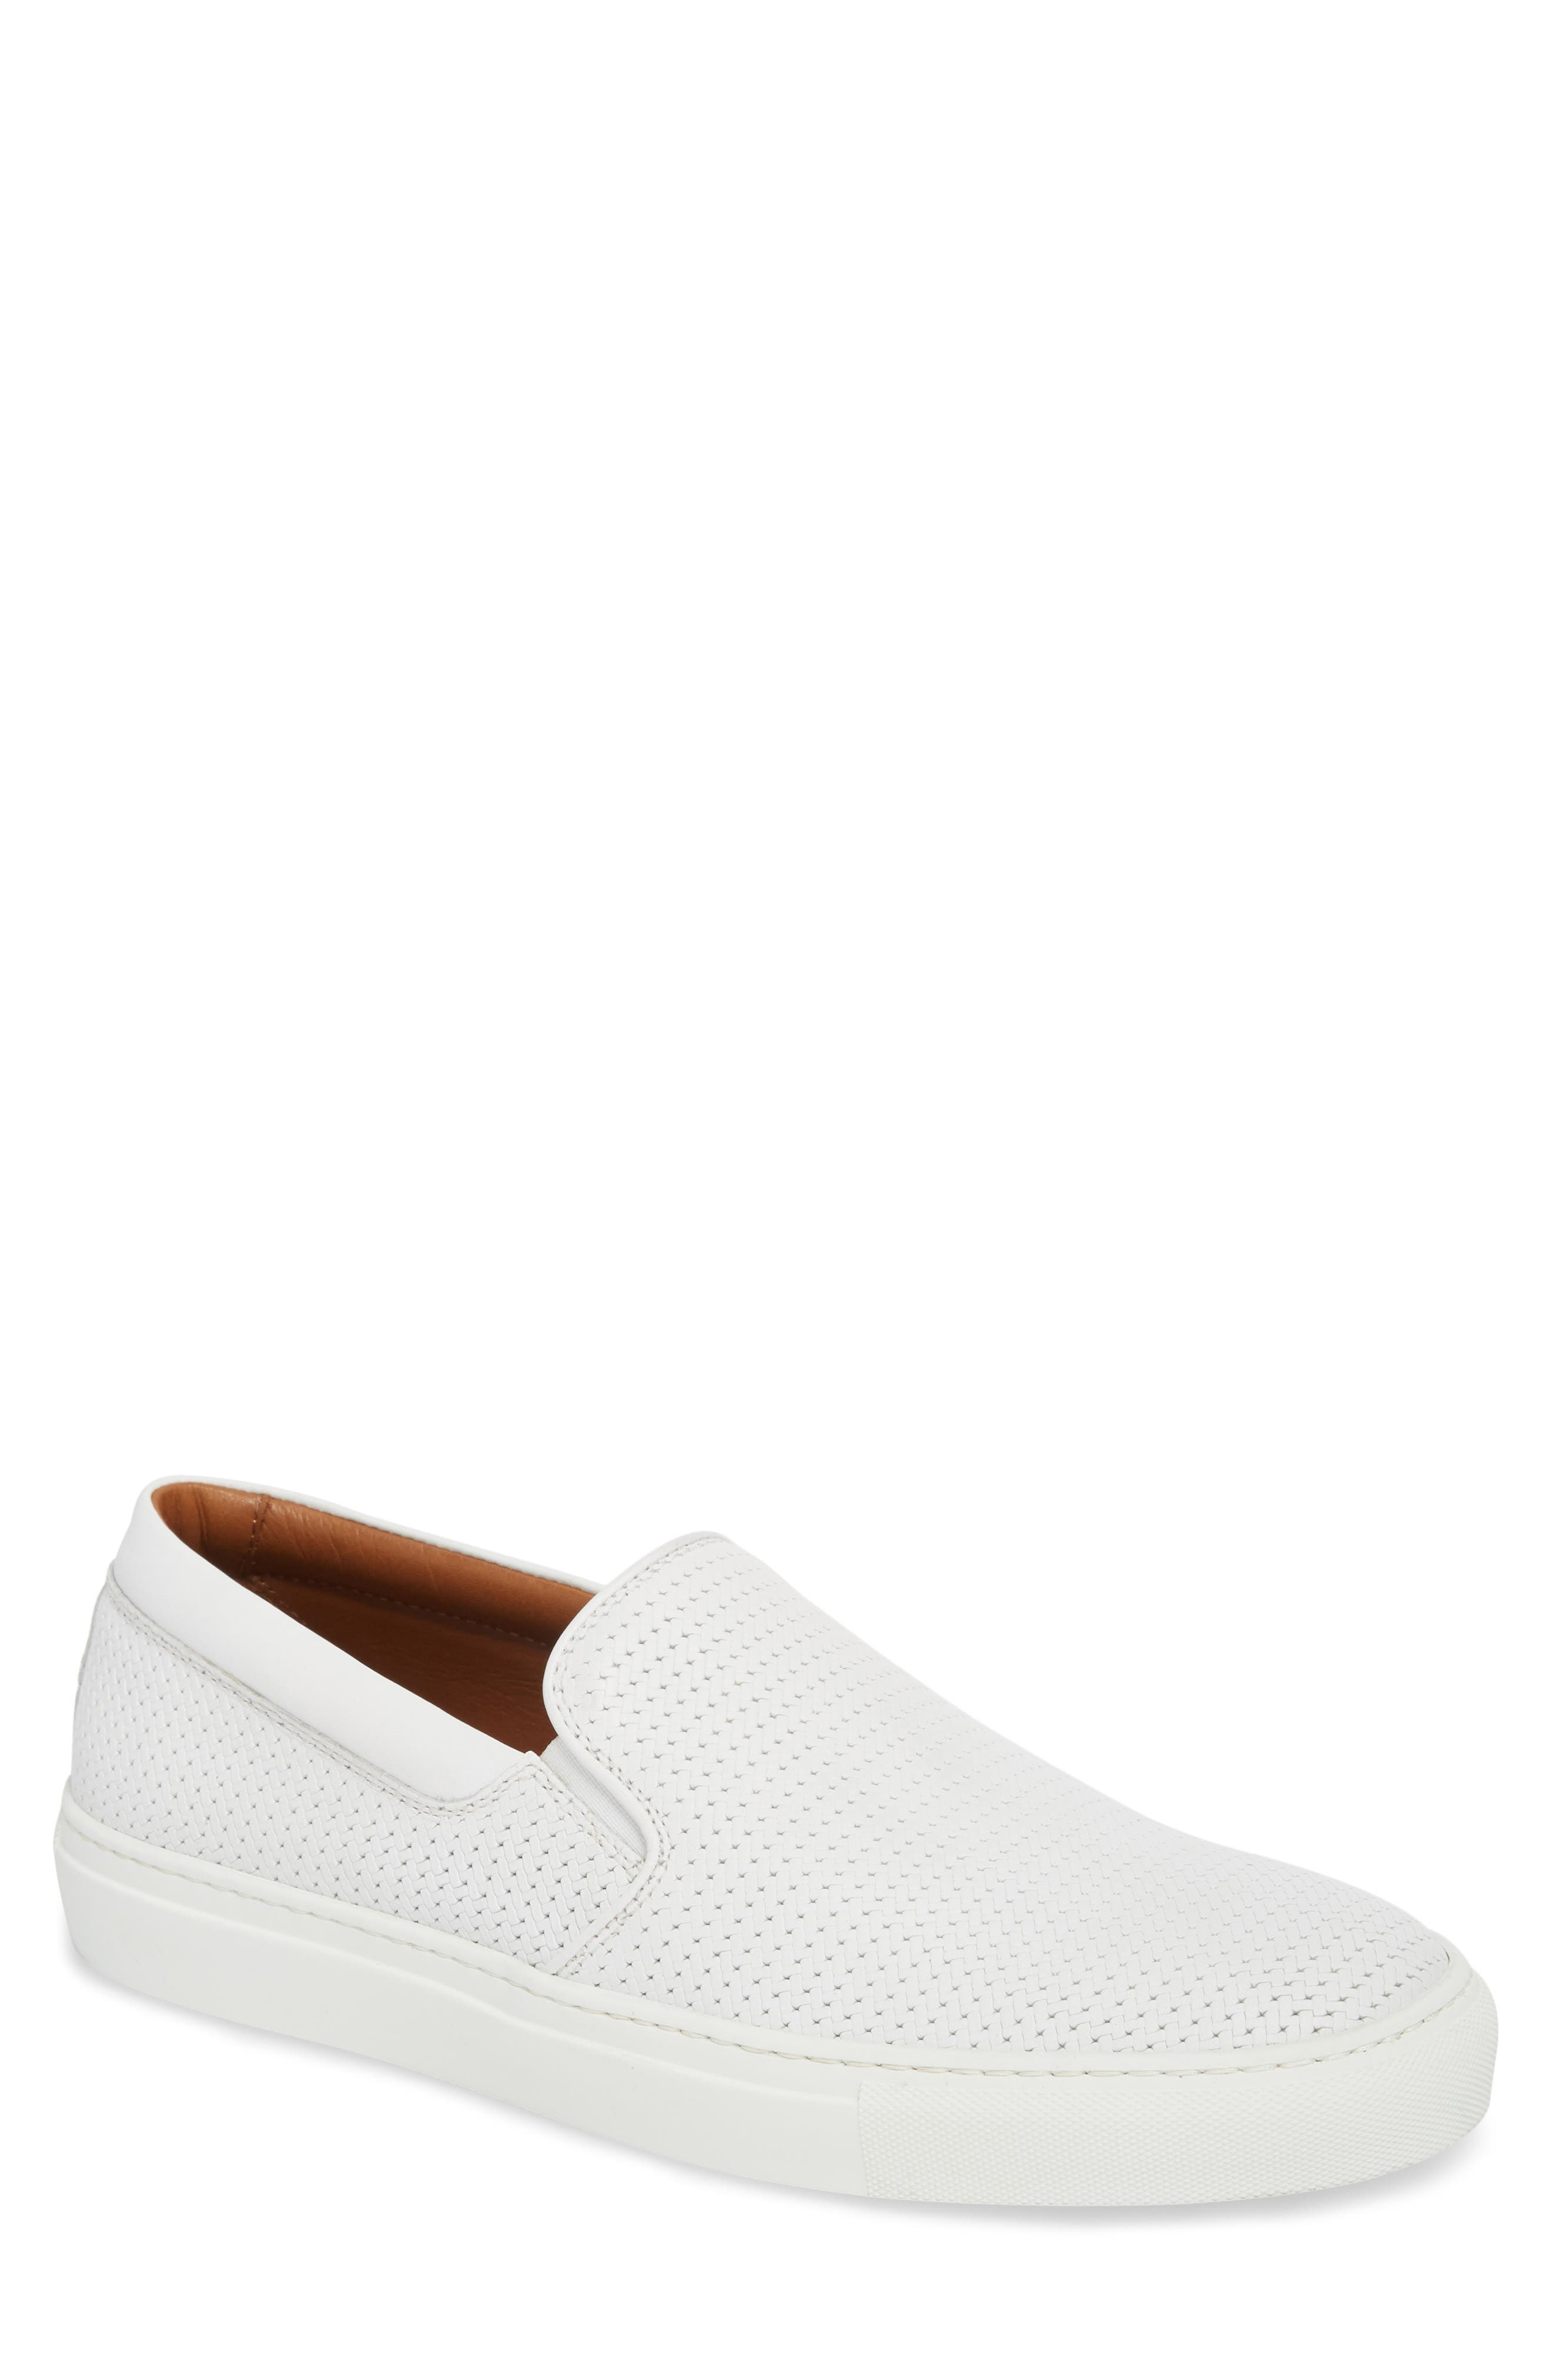 'Anderson' Slip-On,                             Main thumbnail 1, color,                             White